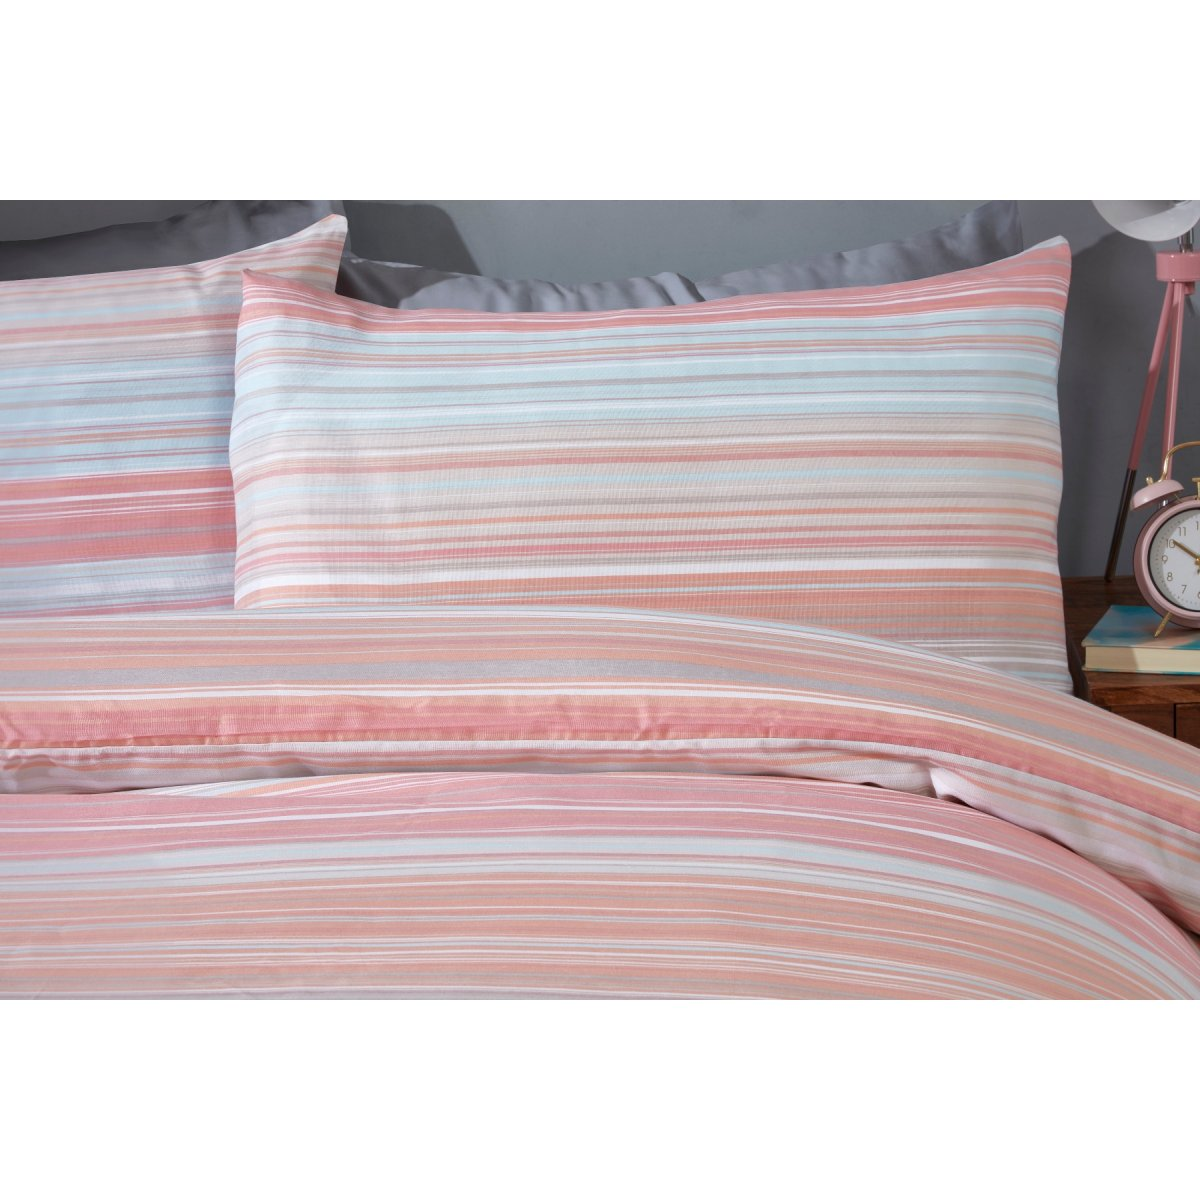 Ombre Stripe Peach Bedding - Reversible Duvet Cover and Pillowcase Set